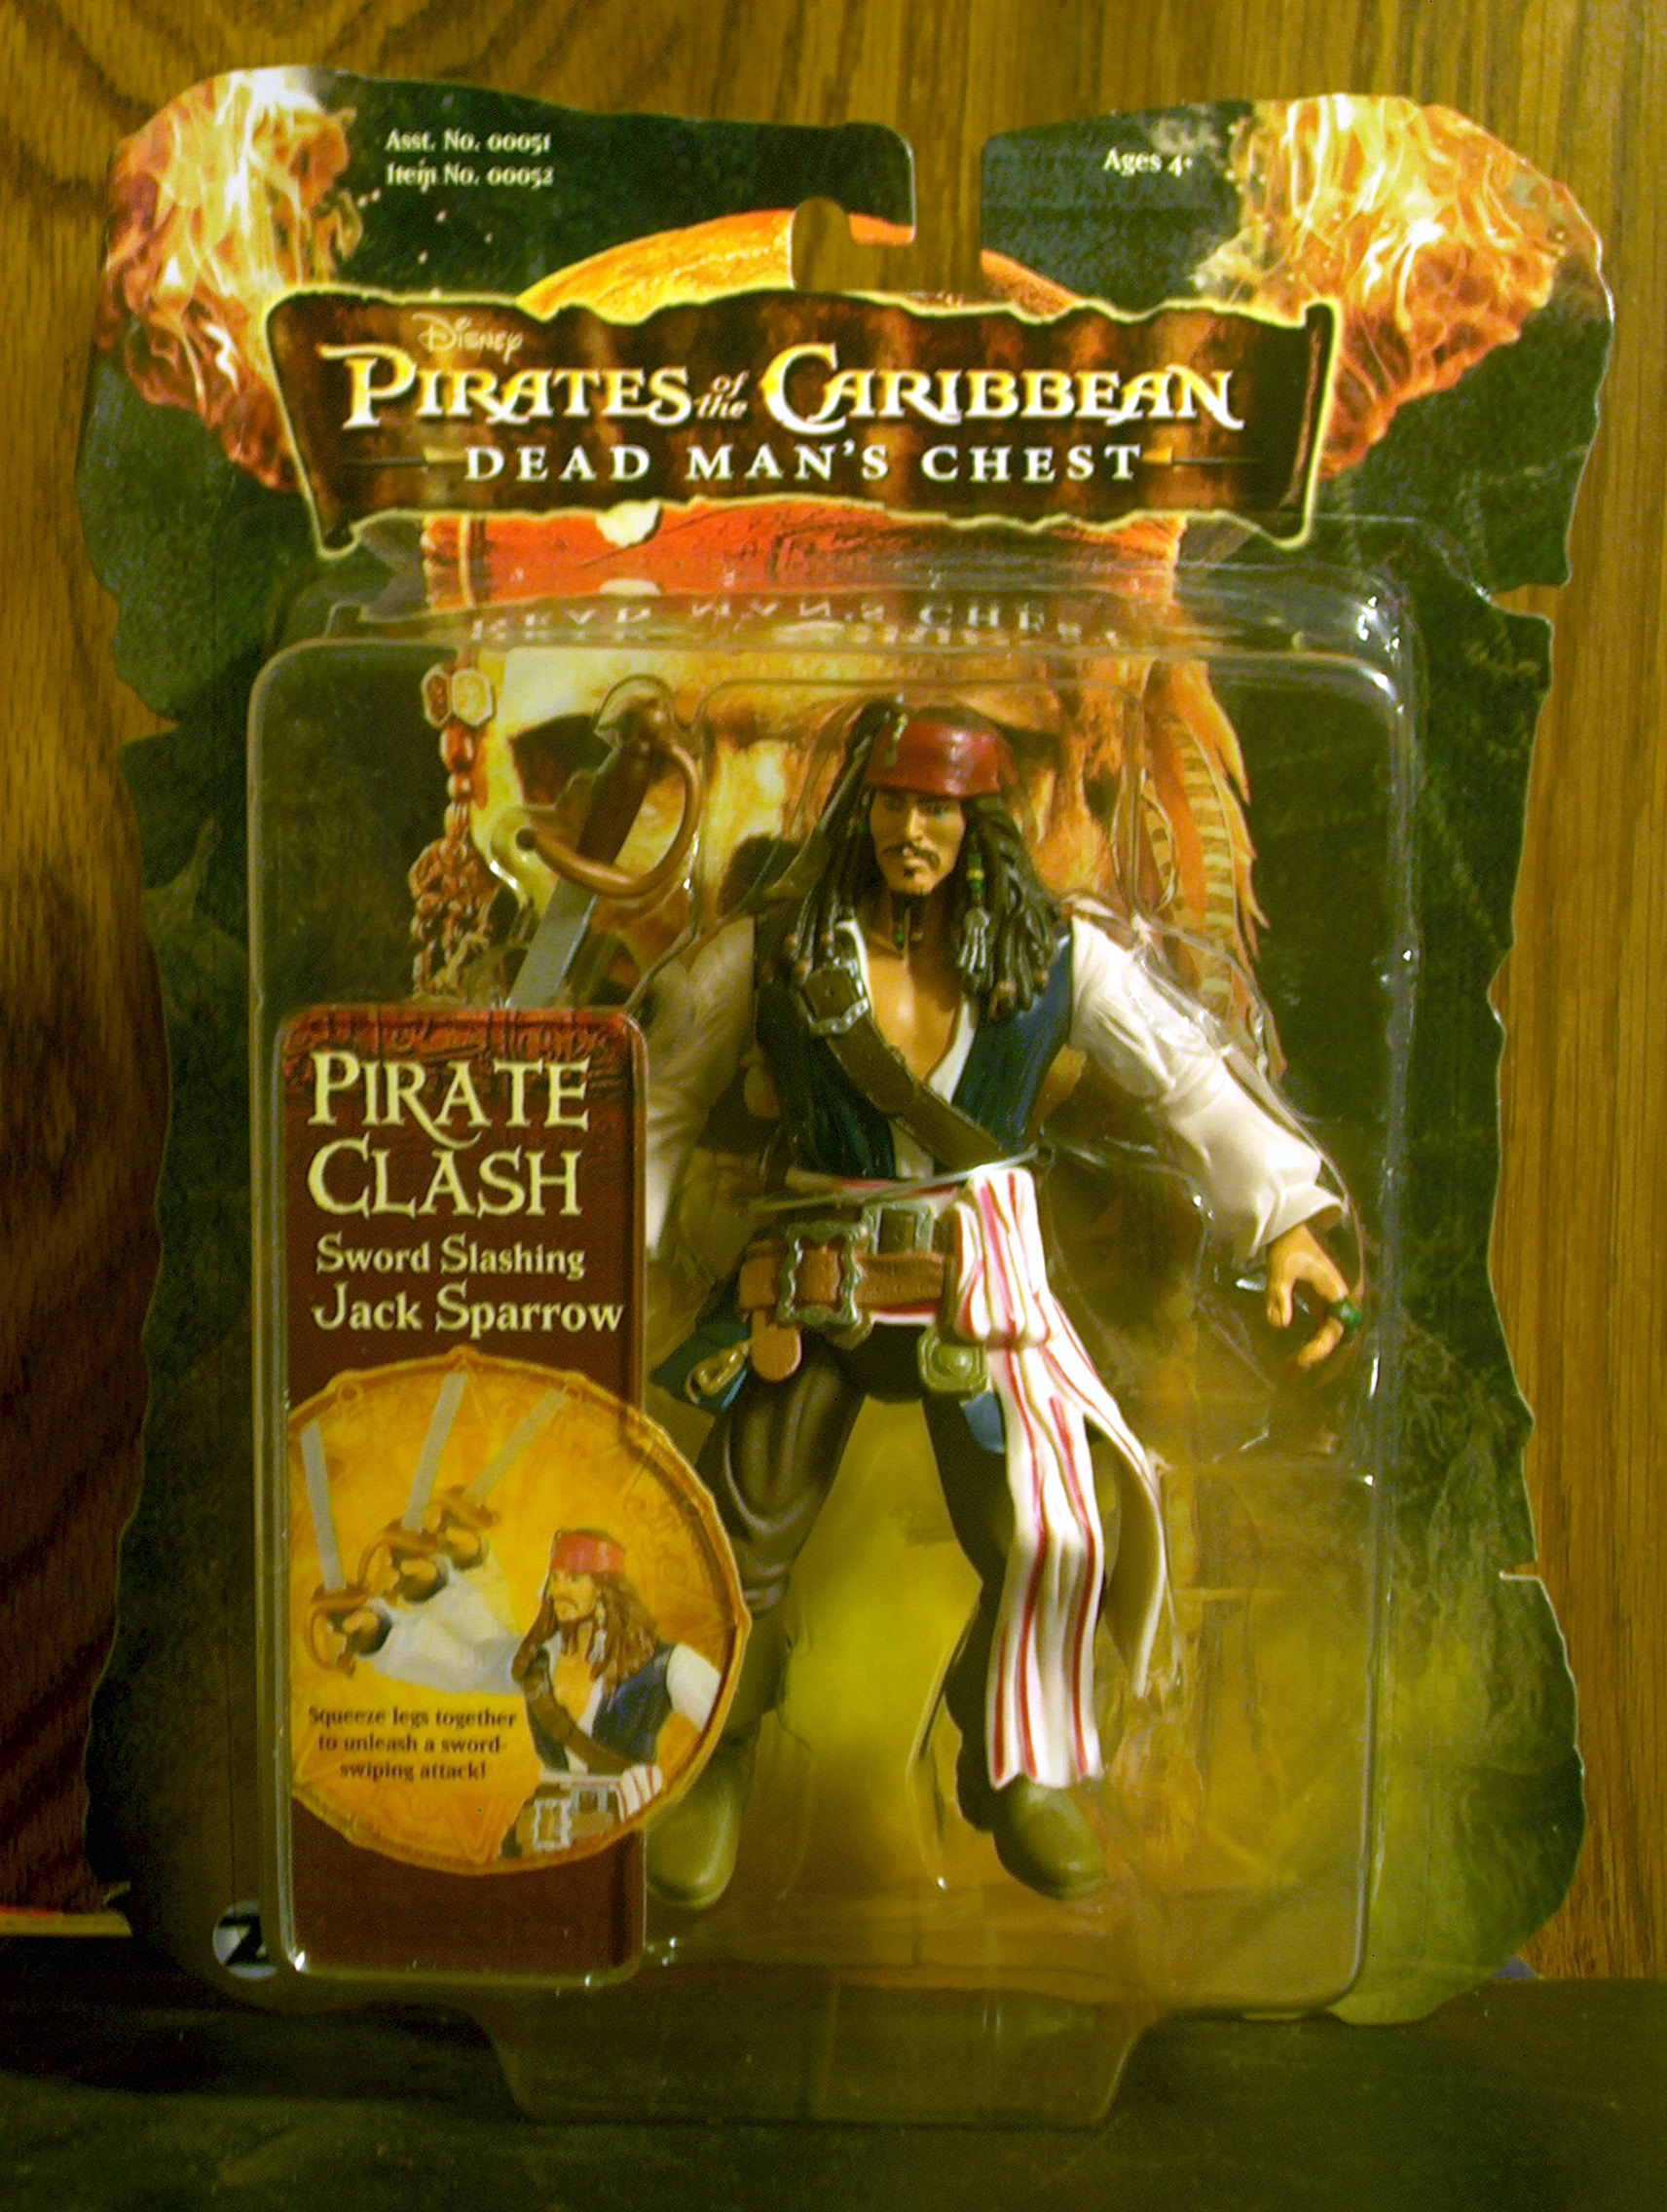 Jack Sparrow (Sword Slashing)